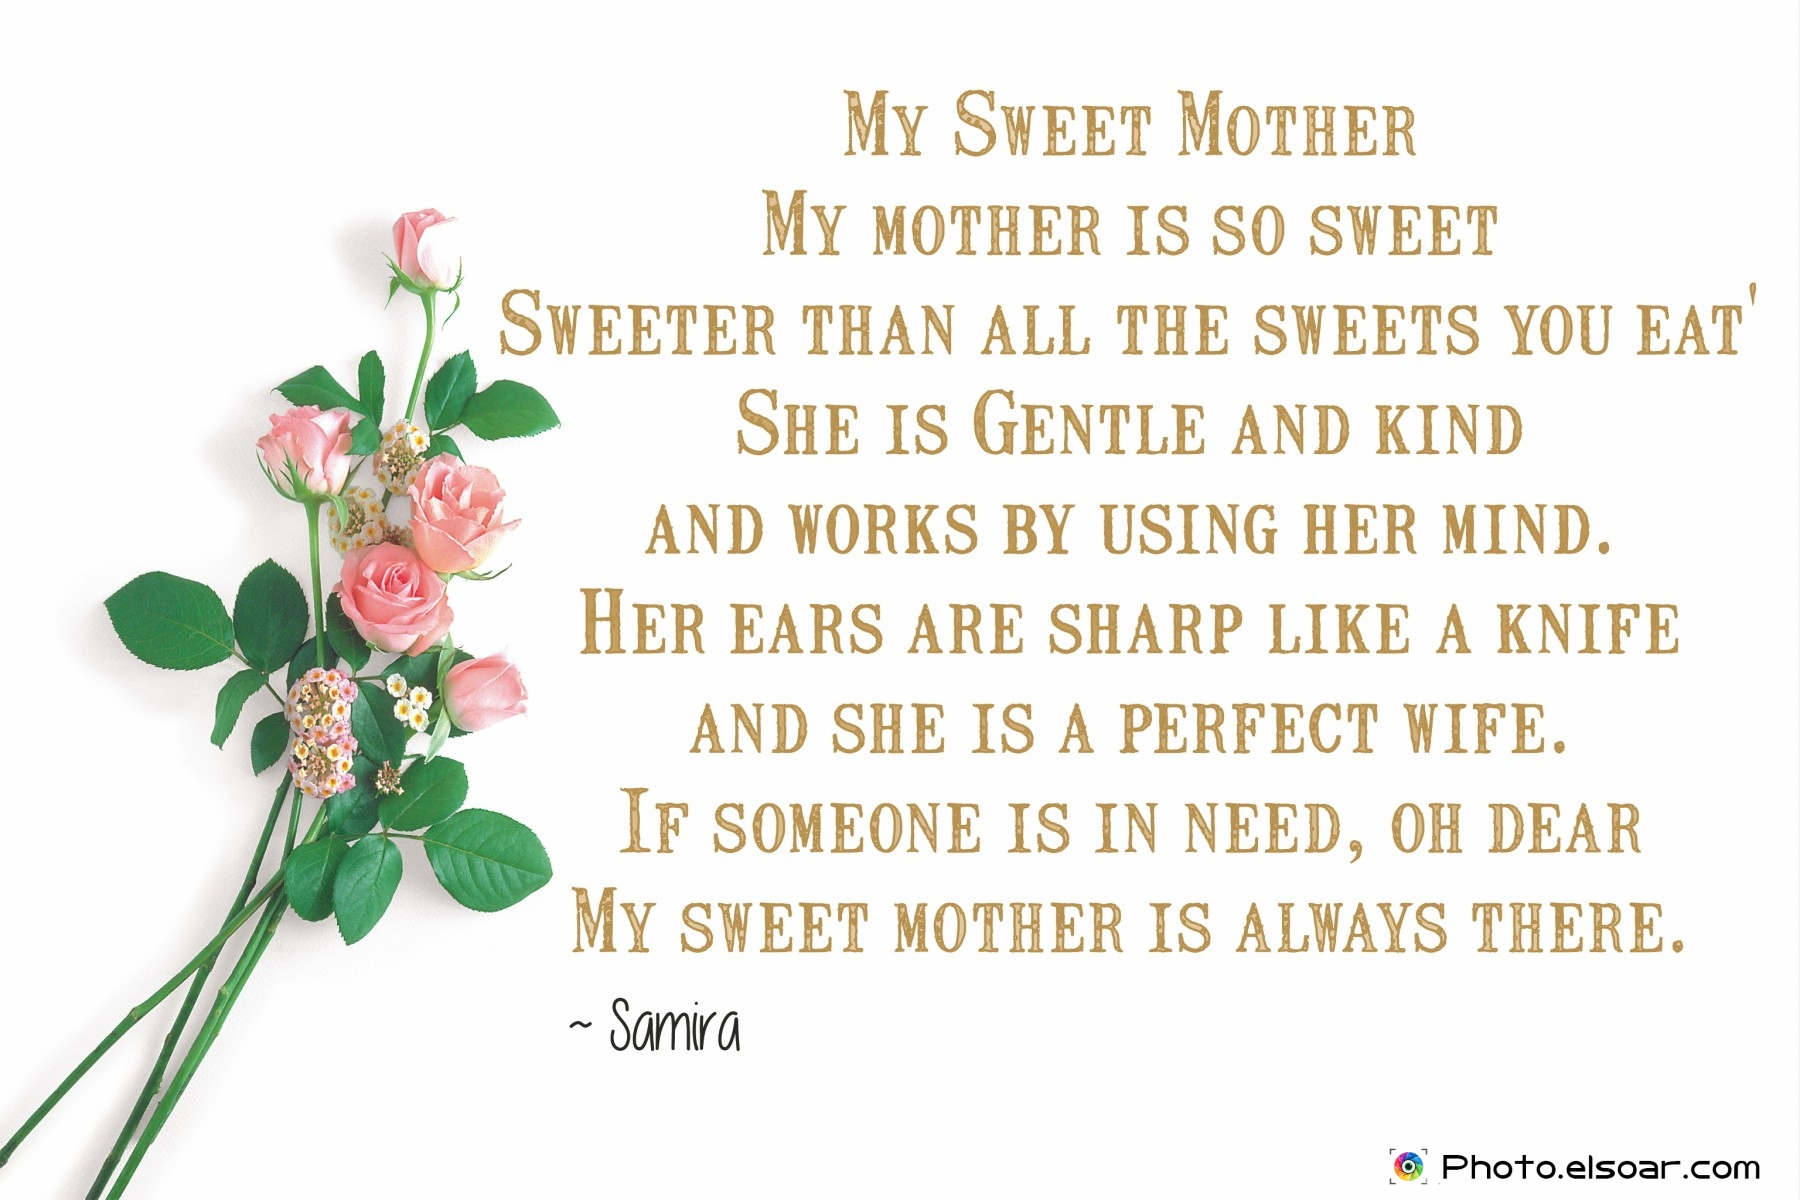 10 Most Expressive Poems For Mother's Day, Unique Designs • Elsoar